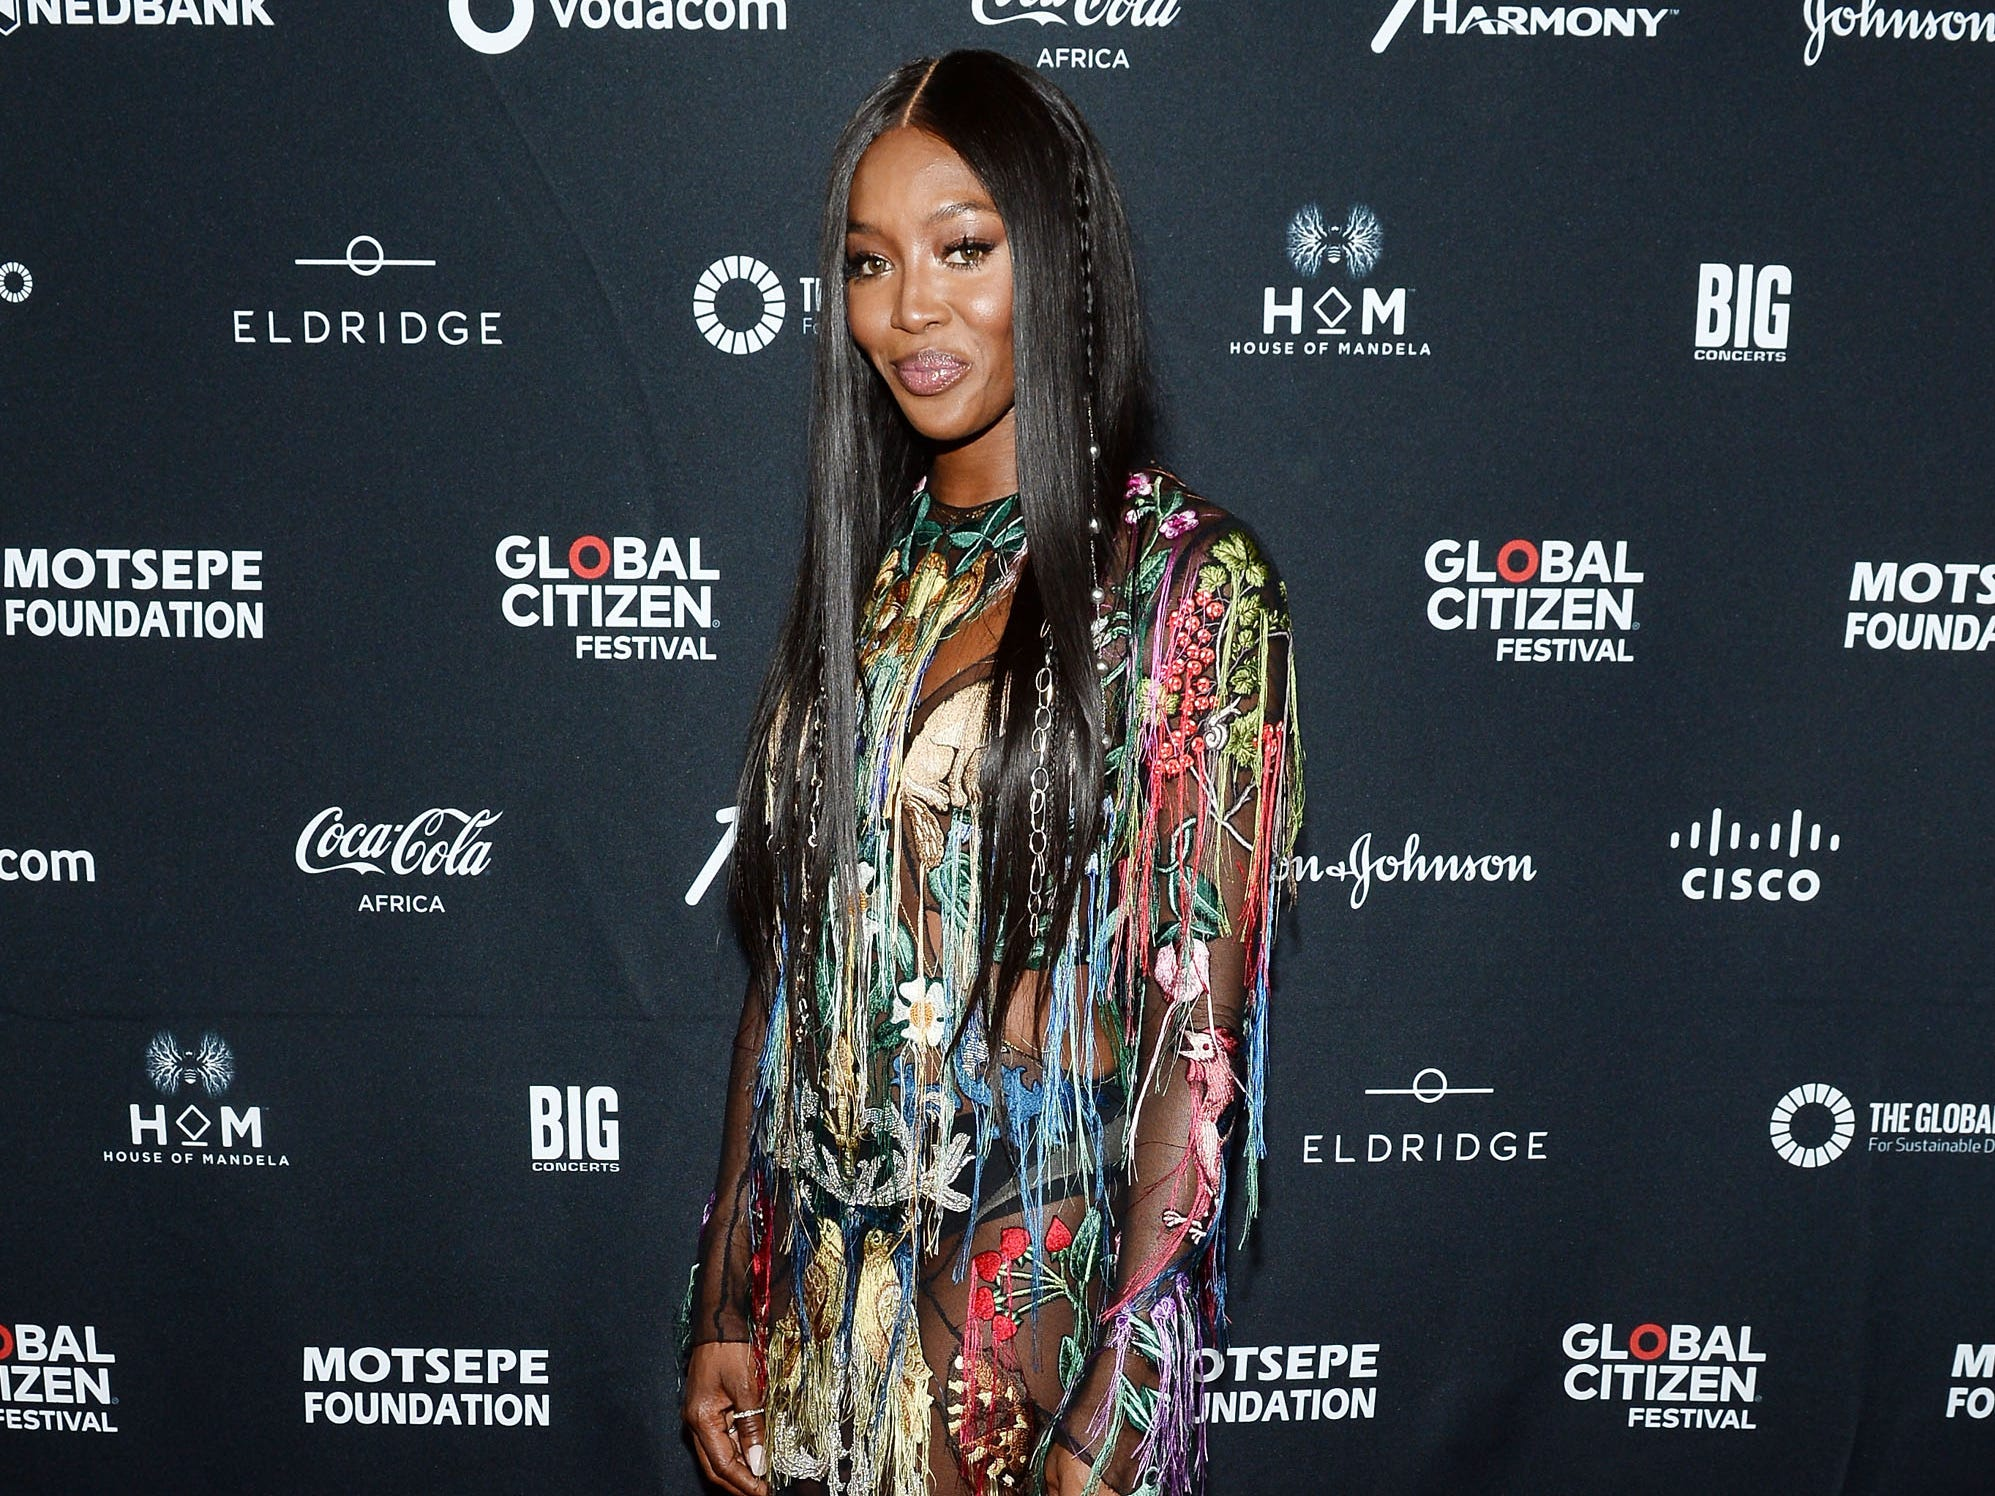 JOHANNESBURG, SOUTH AFRICA - DECEMBER 02:  Naomi Campbell attends the Global Citizen Festival: Mandela 100 at FNB Stadium on December 2, 2018 in Johannesburg, South Africa.  (Photo by Noam Galai/Getty Images for Global Citizen Festival: Mandela 100) ORG XMIT: 775264434 ORIG FILE ID: 1067683730